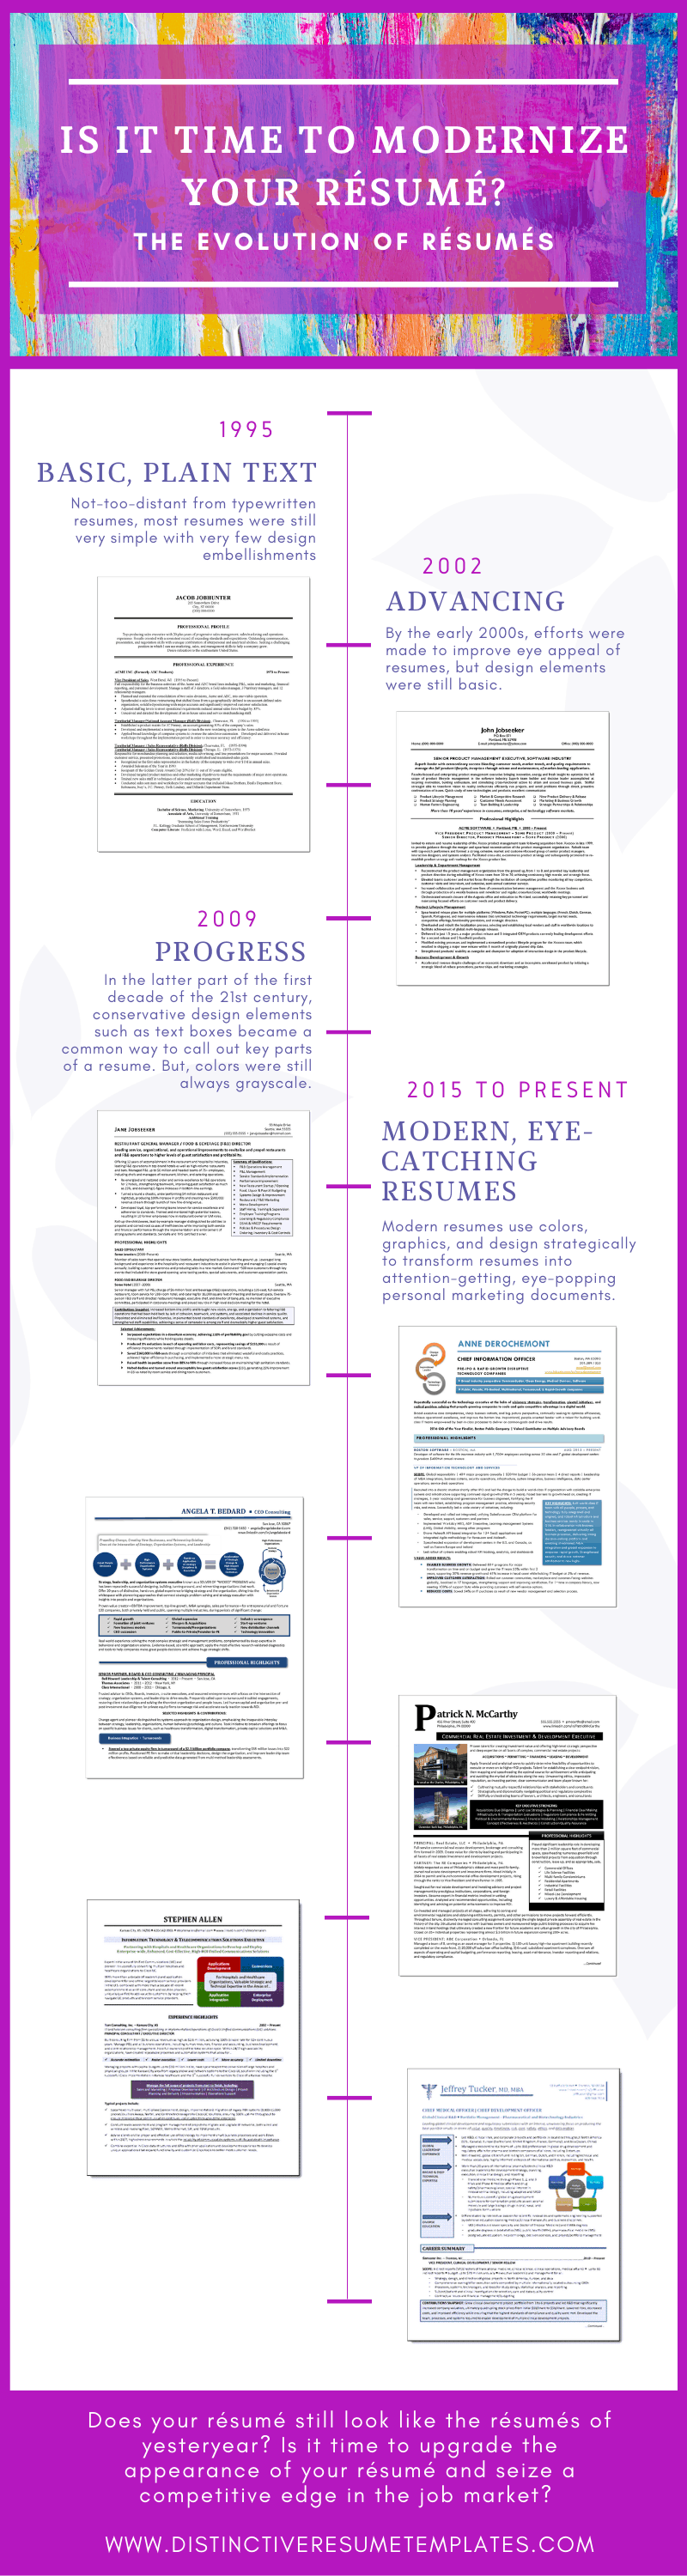 The Evolution of Resumes - Is It Time to Modernize Yours